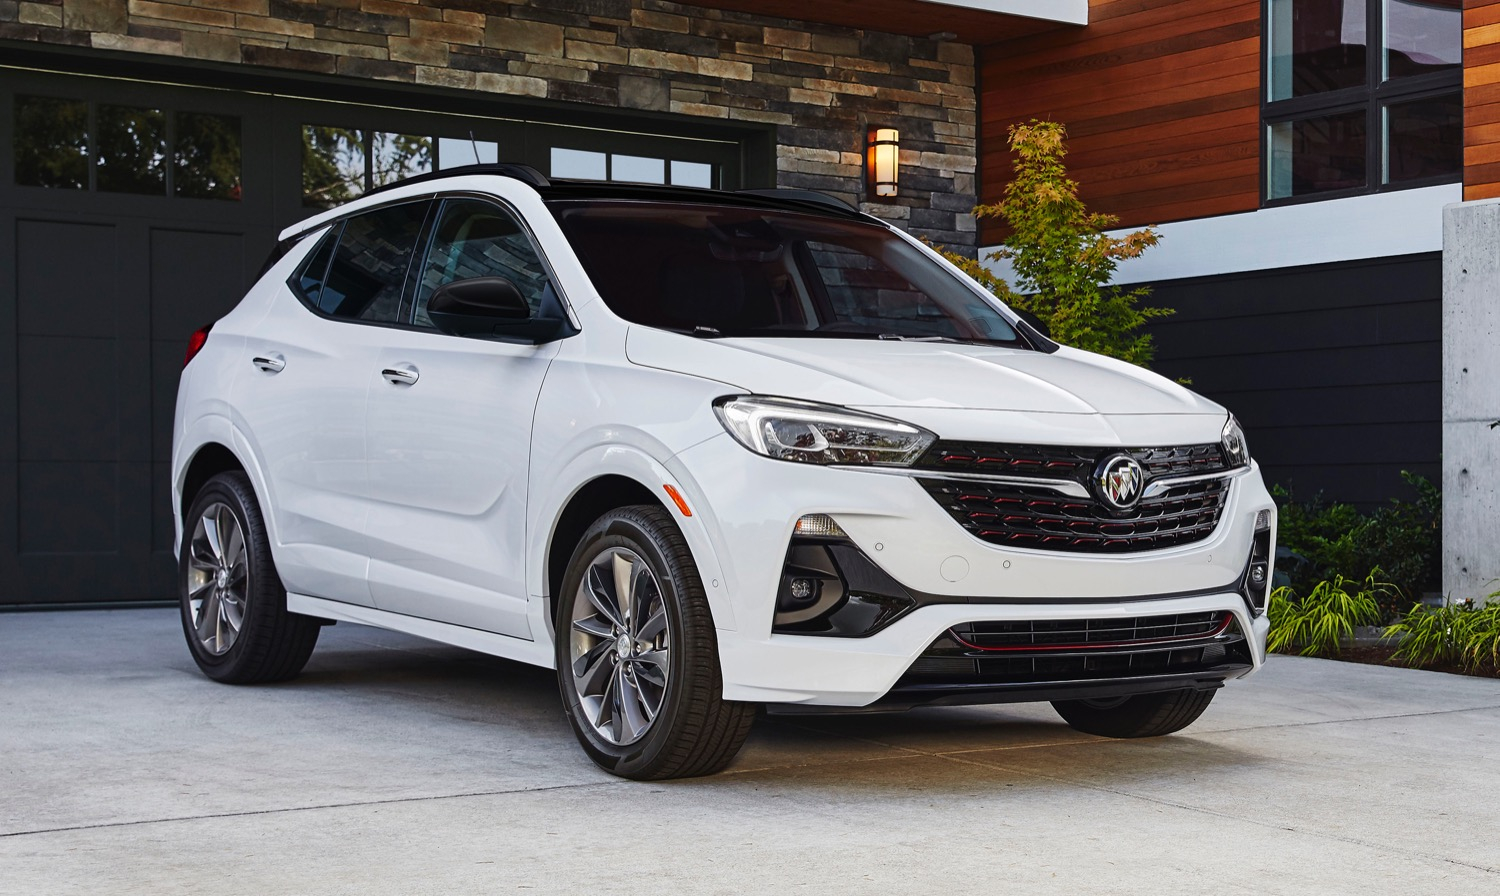 Buick Encore Gx Discount, Special Lease Offer June 2020 | Gm 2022 Buick Encore Gx Incentives, Inventory, Lease